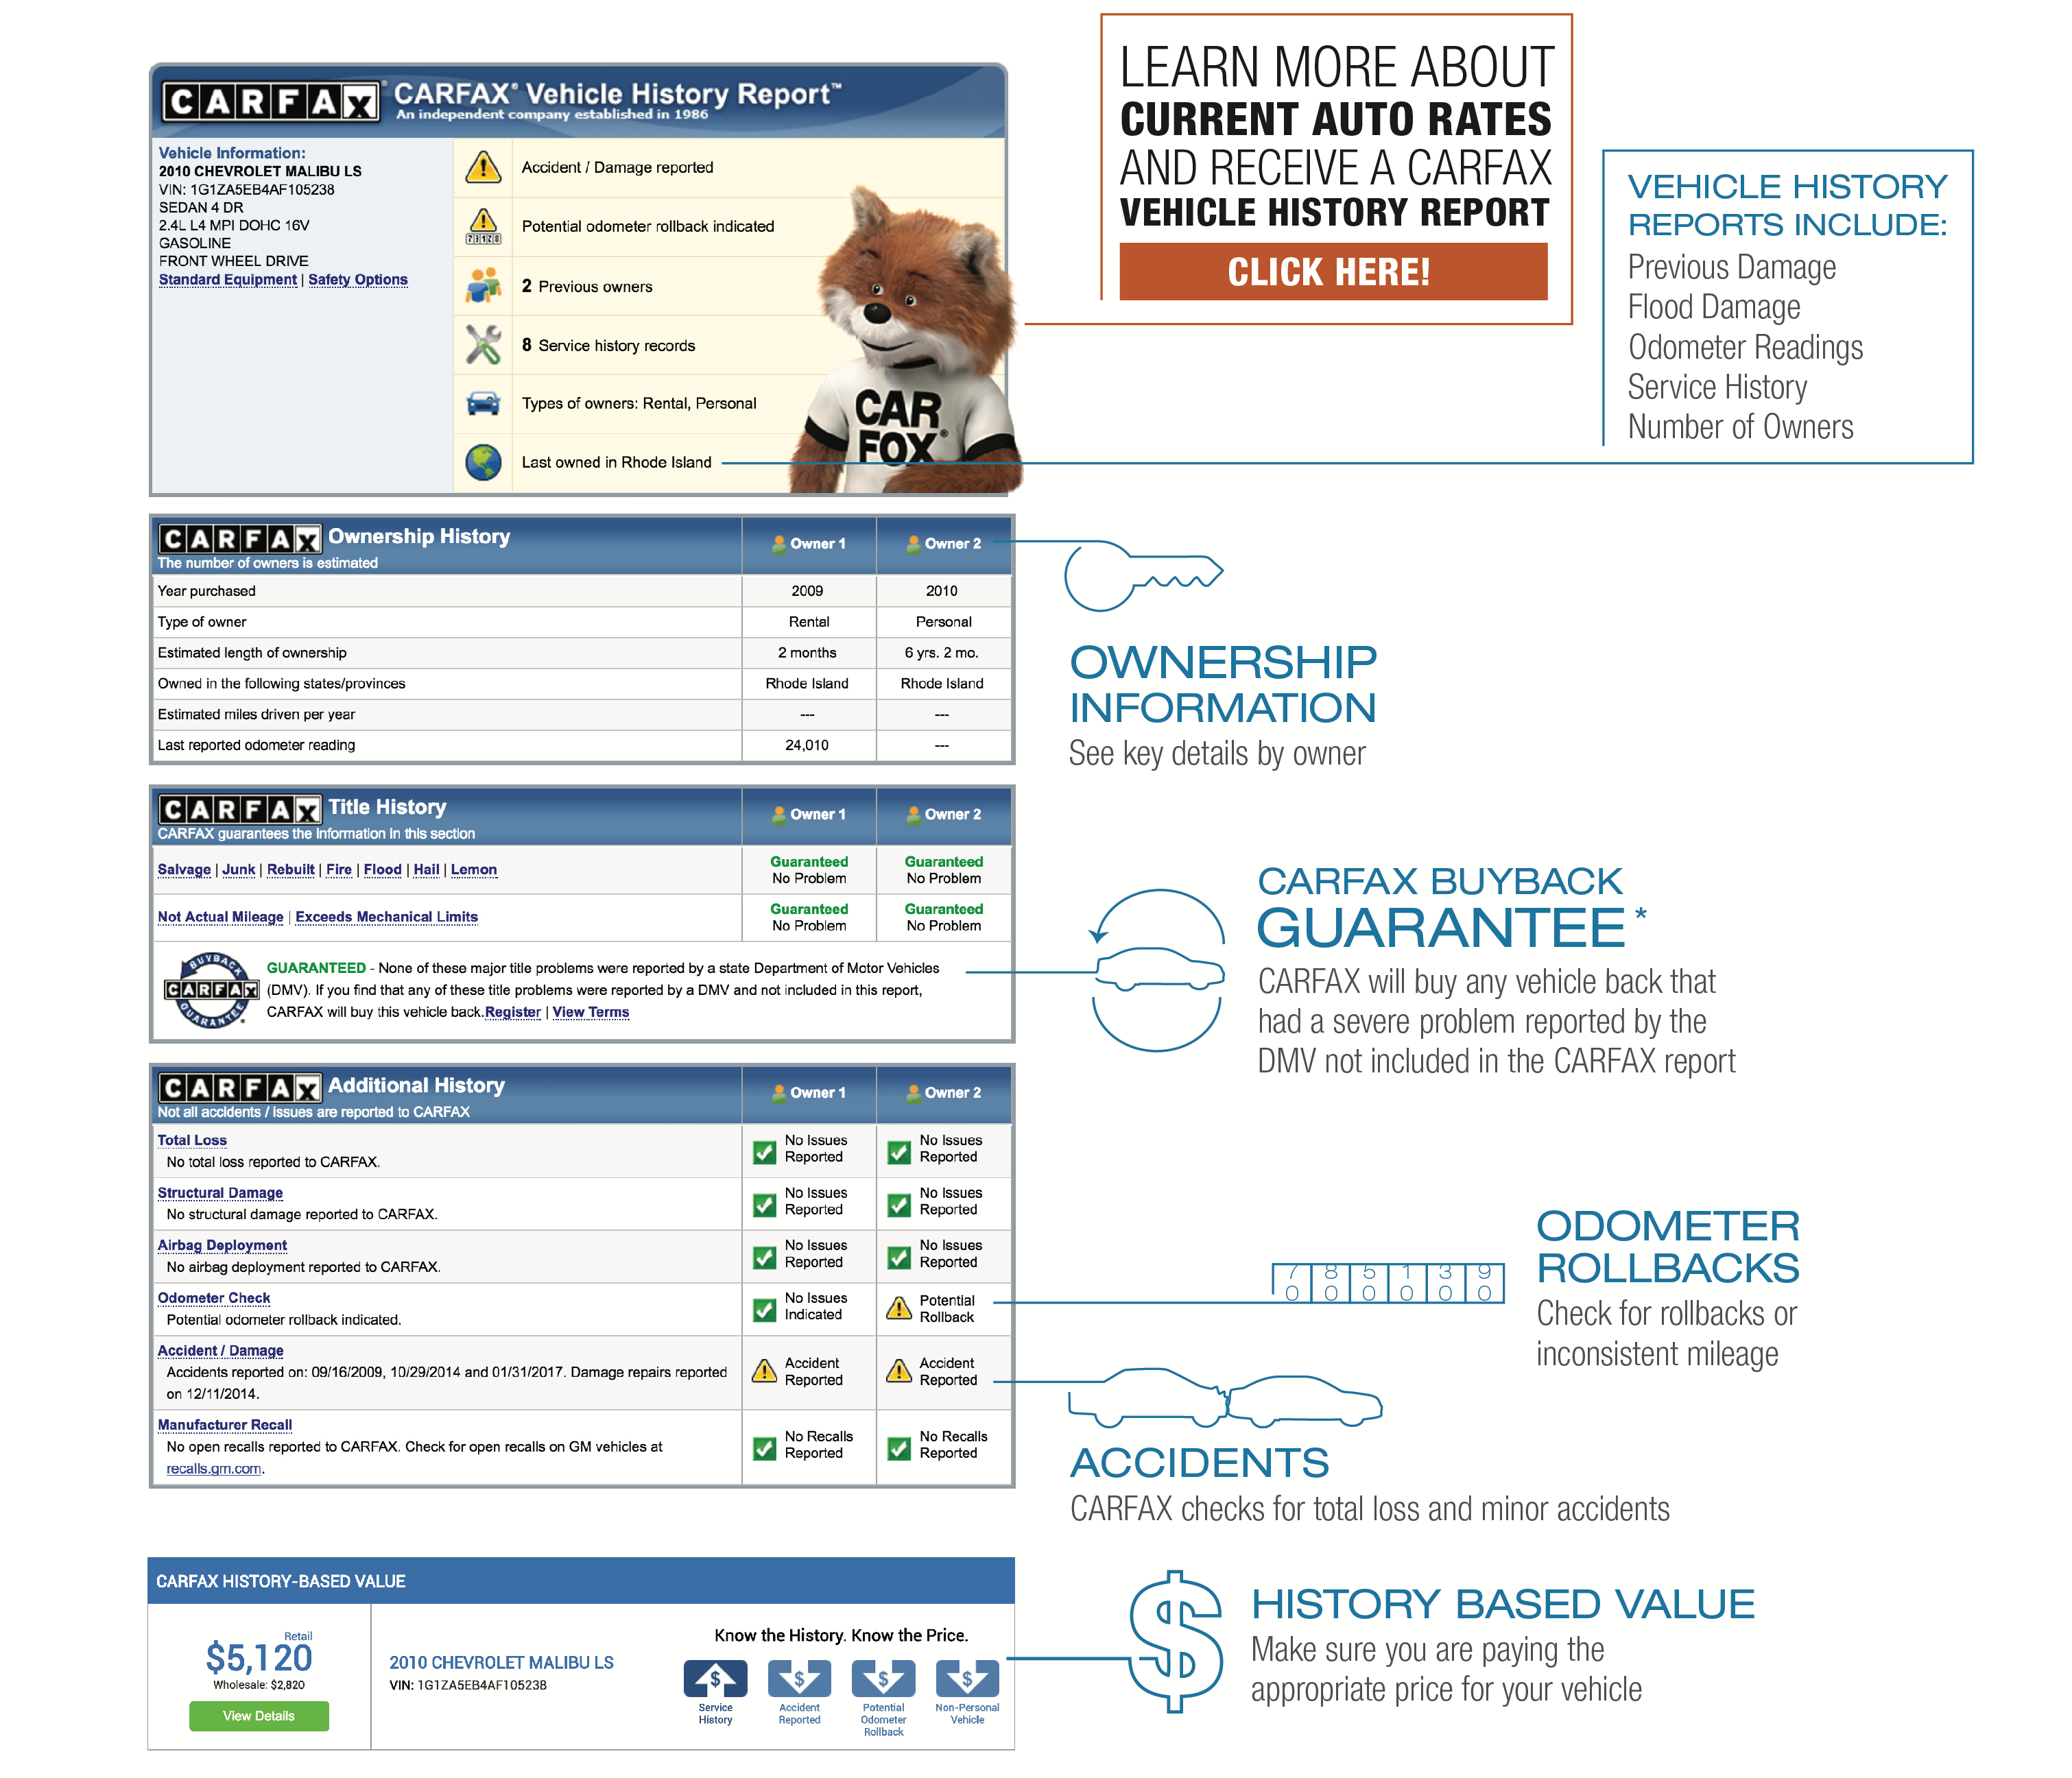 Carfax Vin Check Beautiful Carfax Banking and Insurance Group More Information Better Decisions